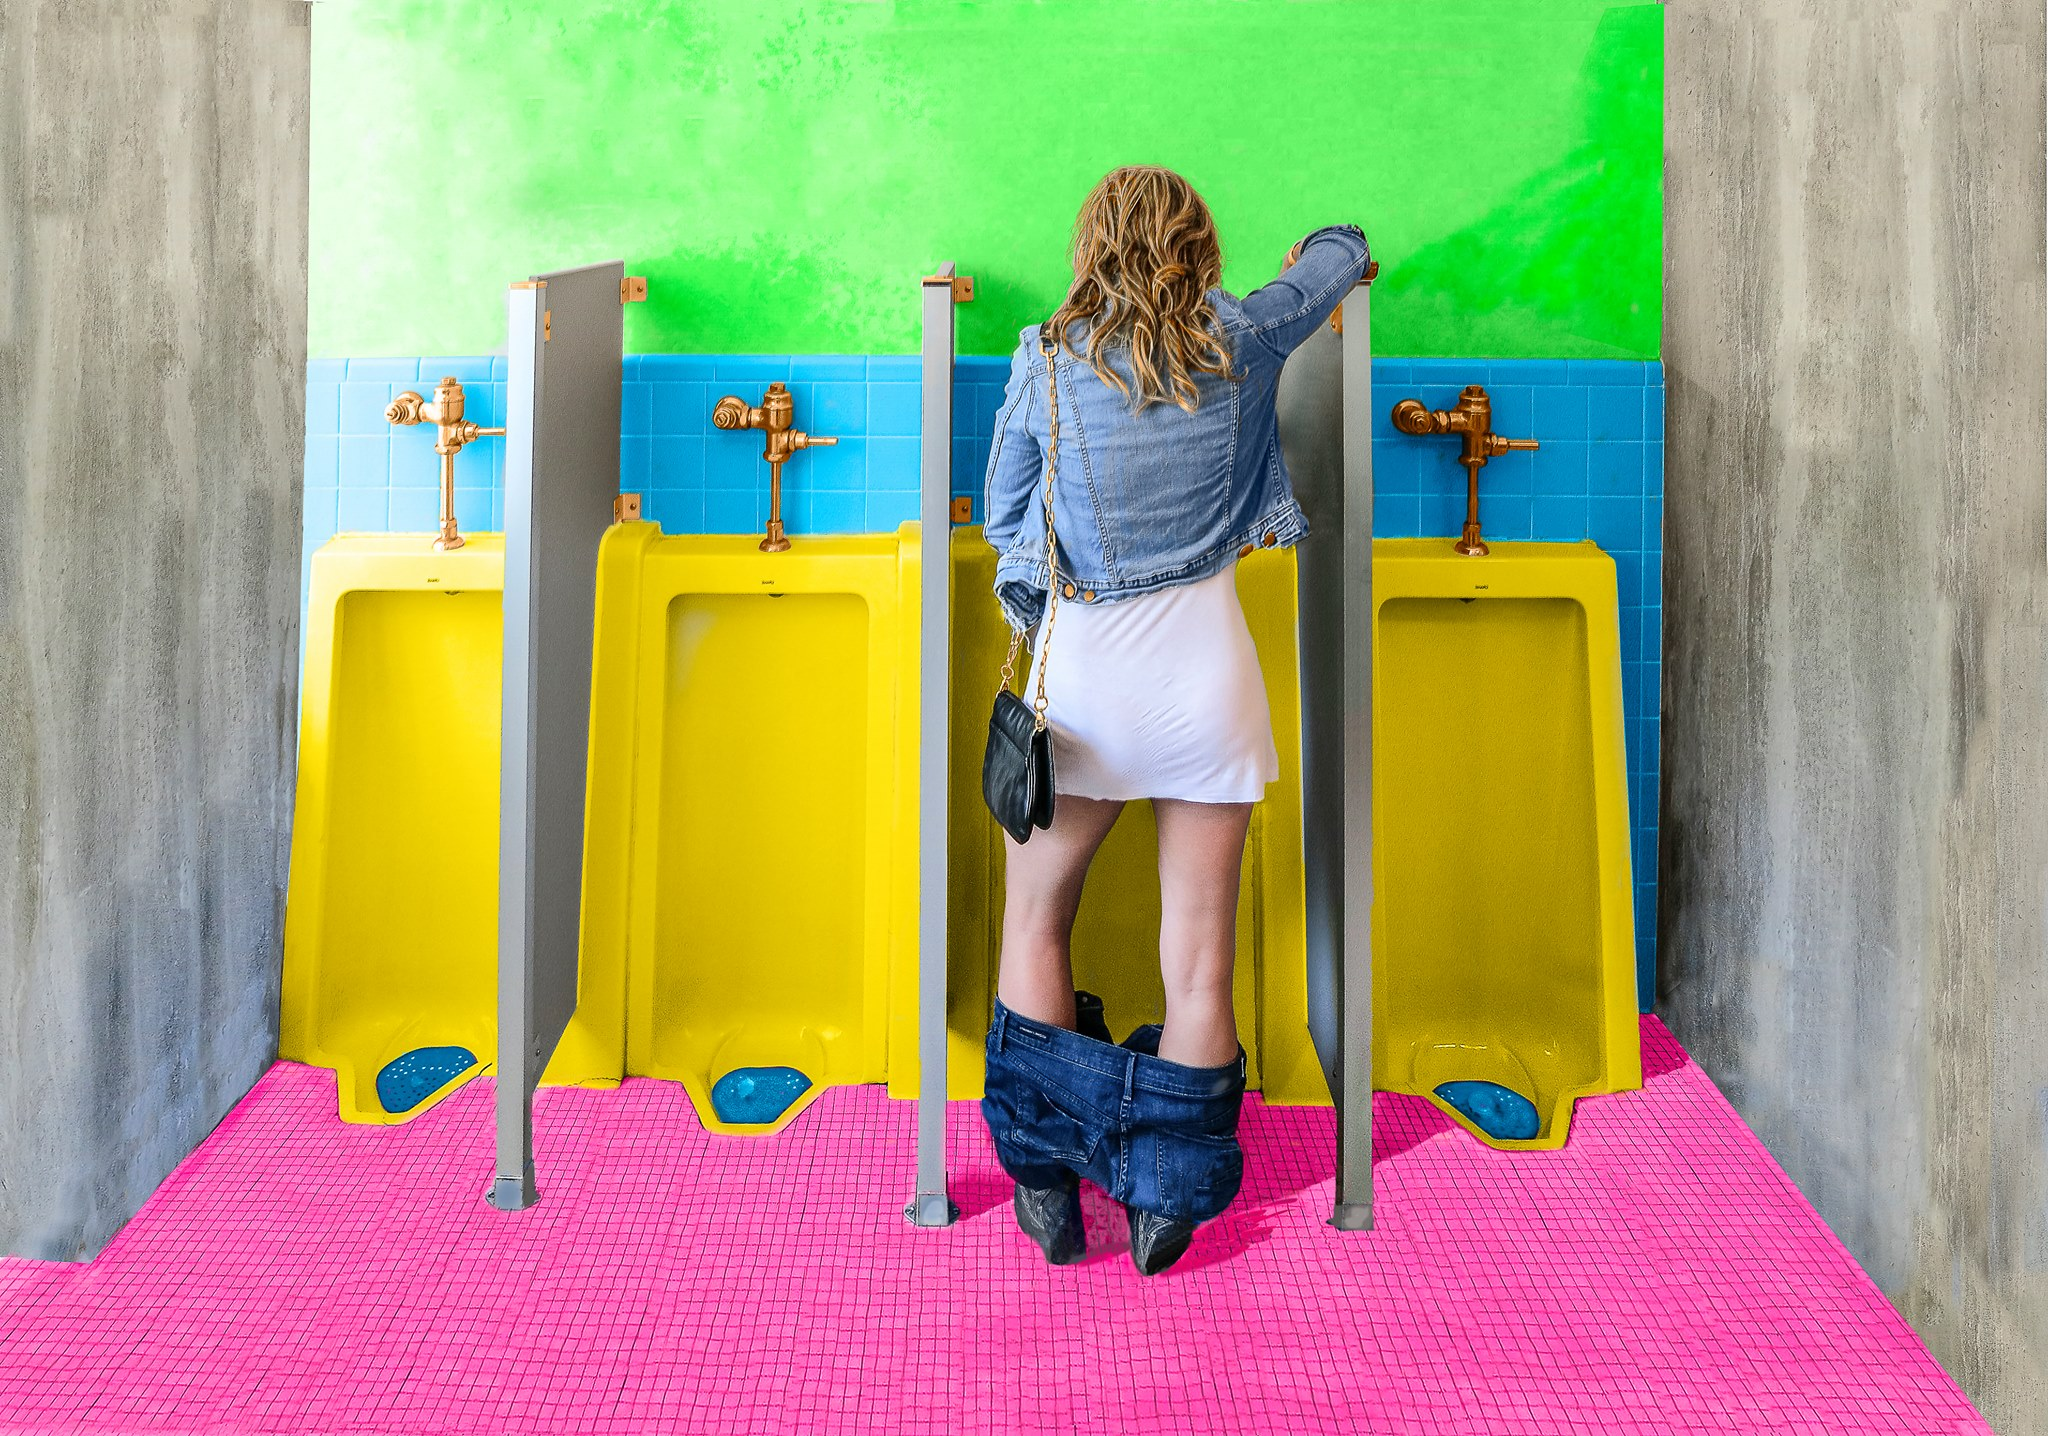 Ladies, You Too Can Now Pee Standing Up